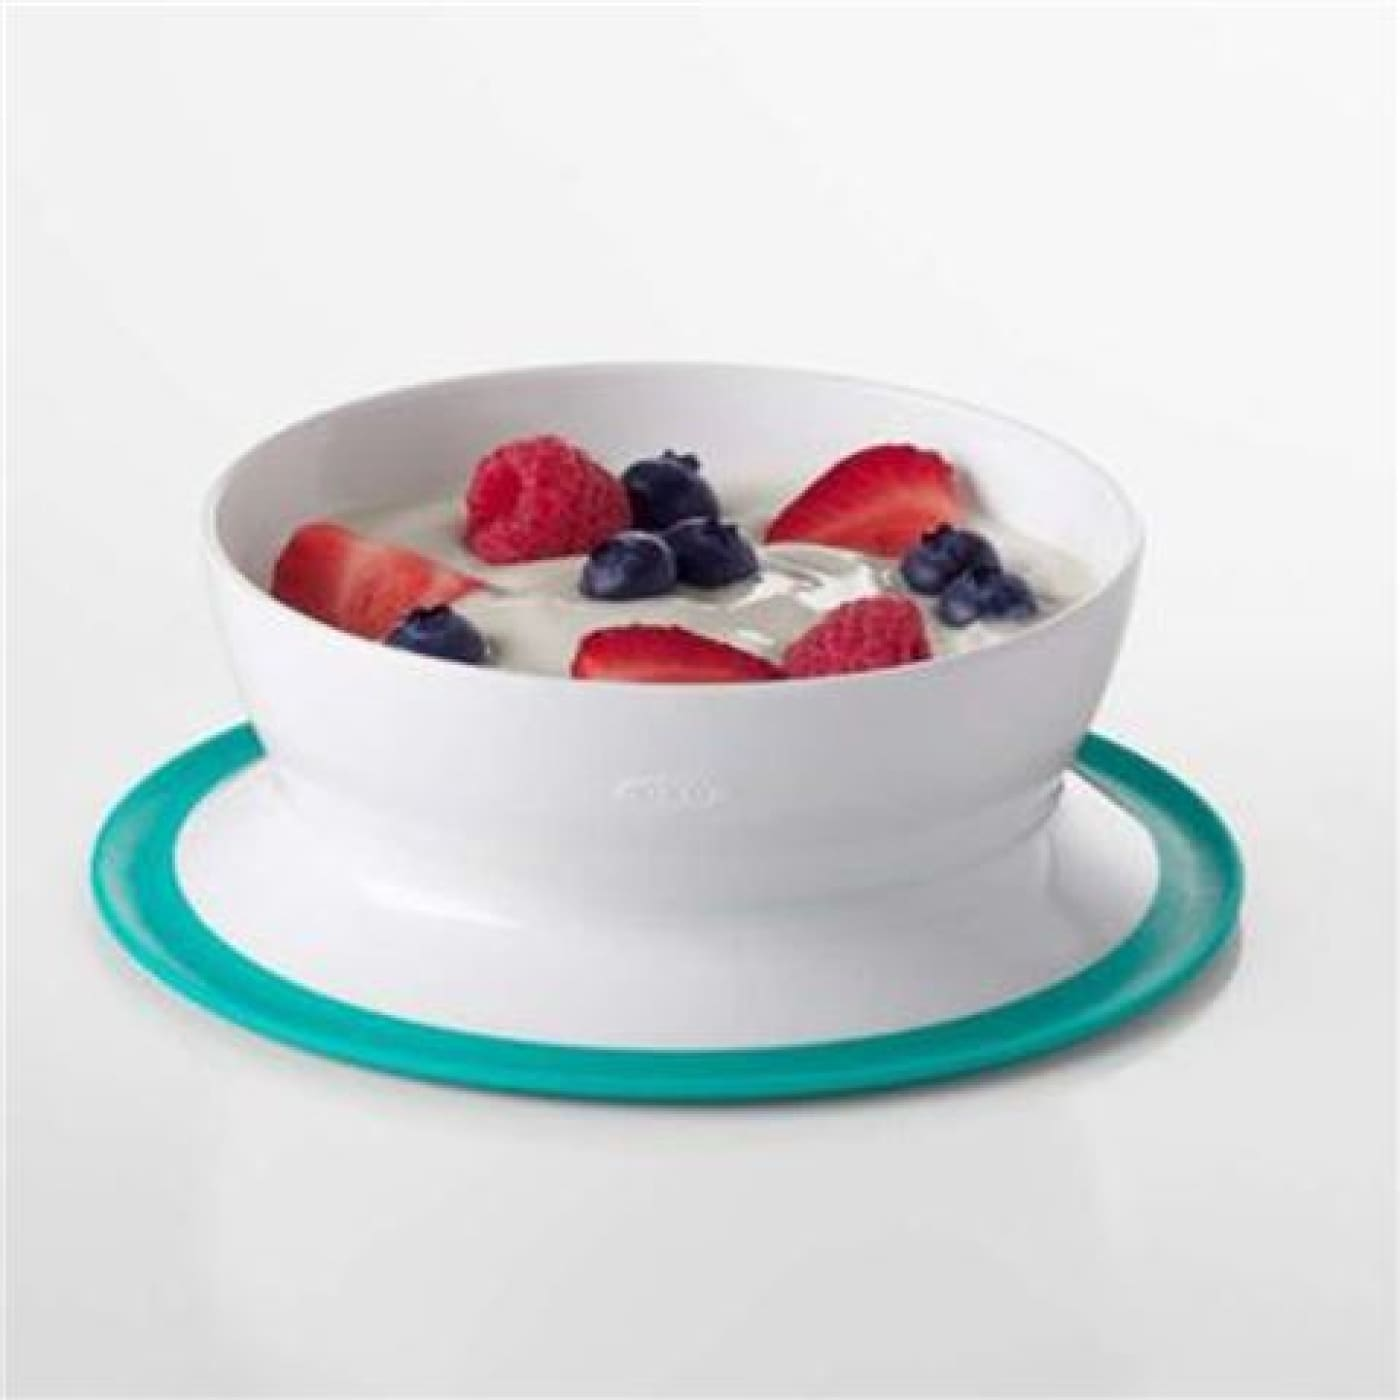 Oxo Tot Stick & Stay Suction Bowl - Teal - Teal - NURSING & FEEDING - CUTLERY/PLATES/BOWLS/TOYS